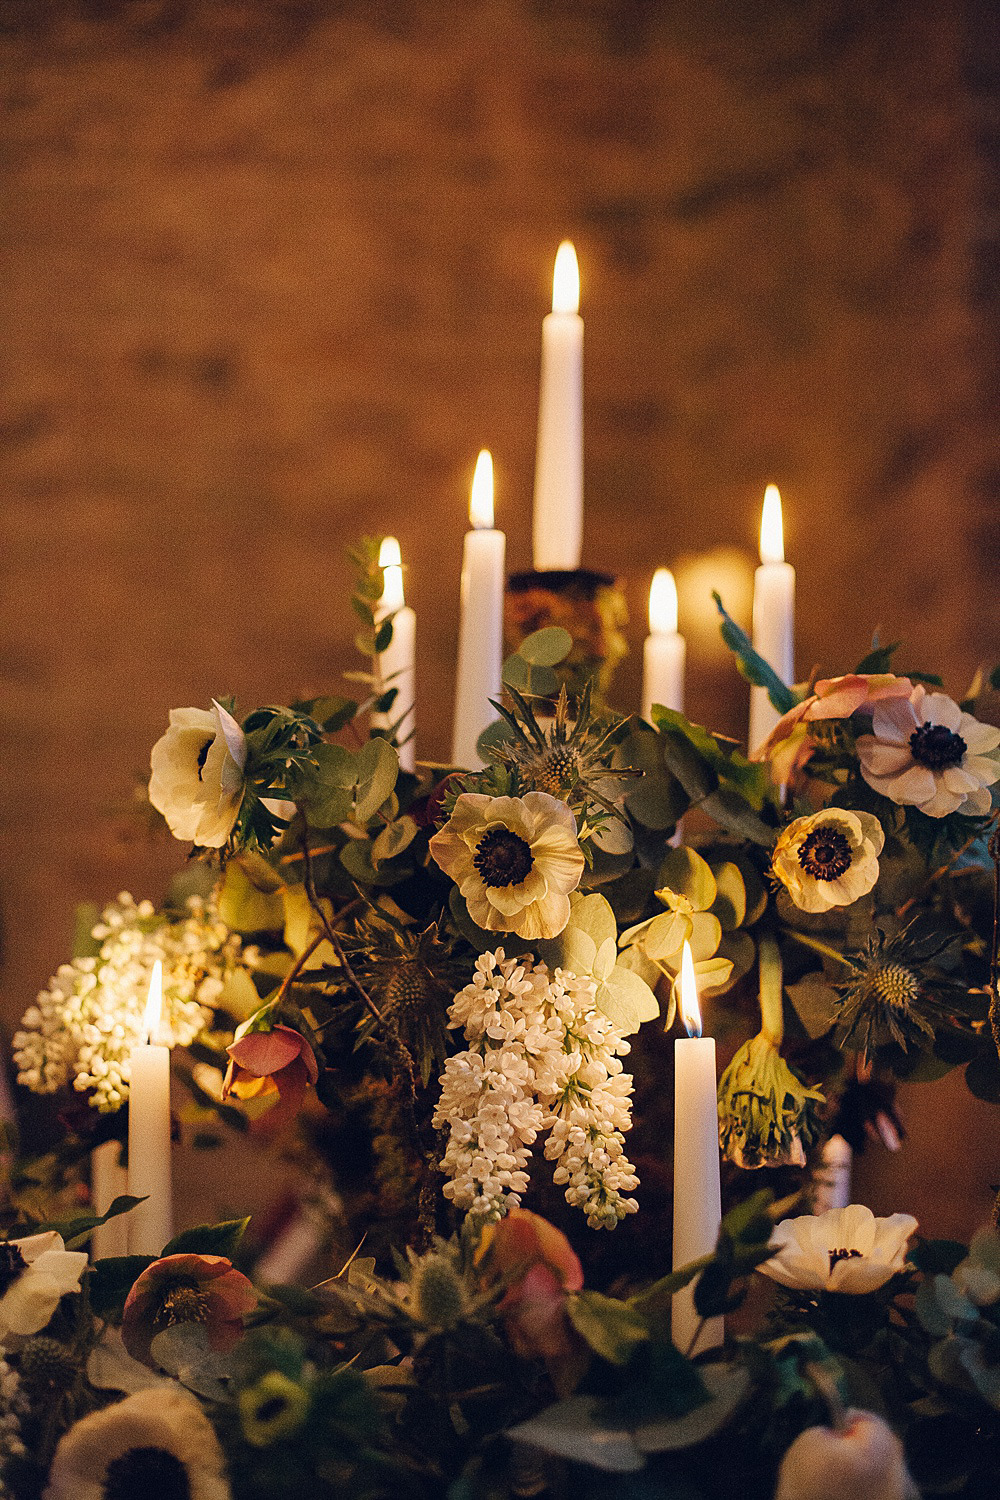 Floral Flowers Candle Candlelight Merriscourt Barn Wedding Cotswolds Katie de Silva Photography